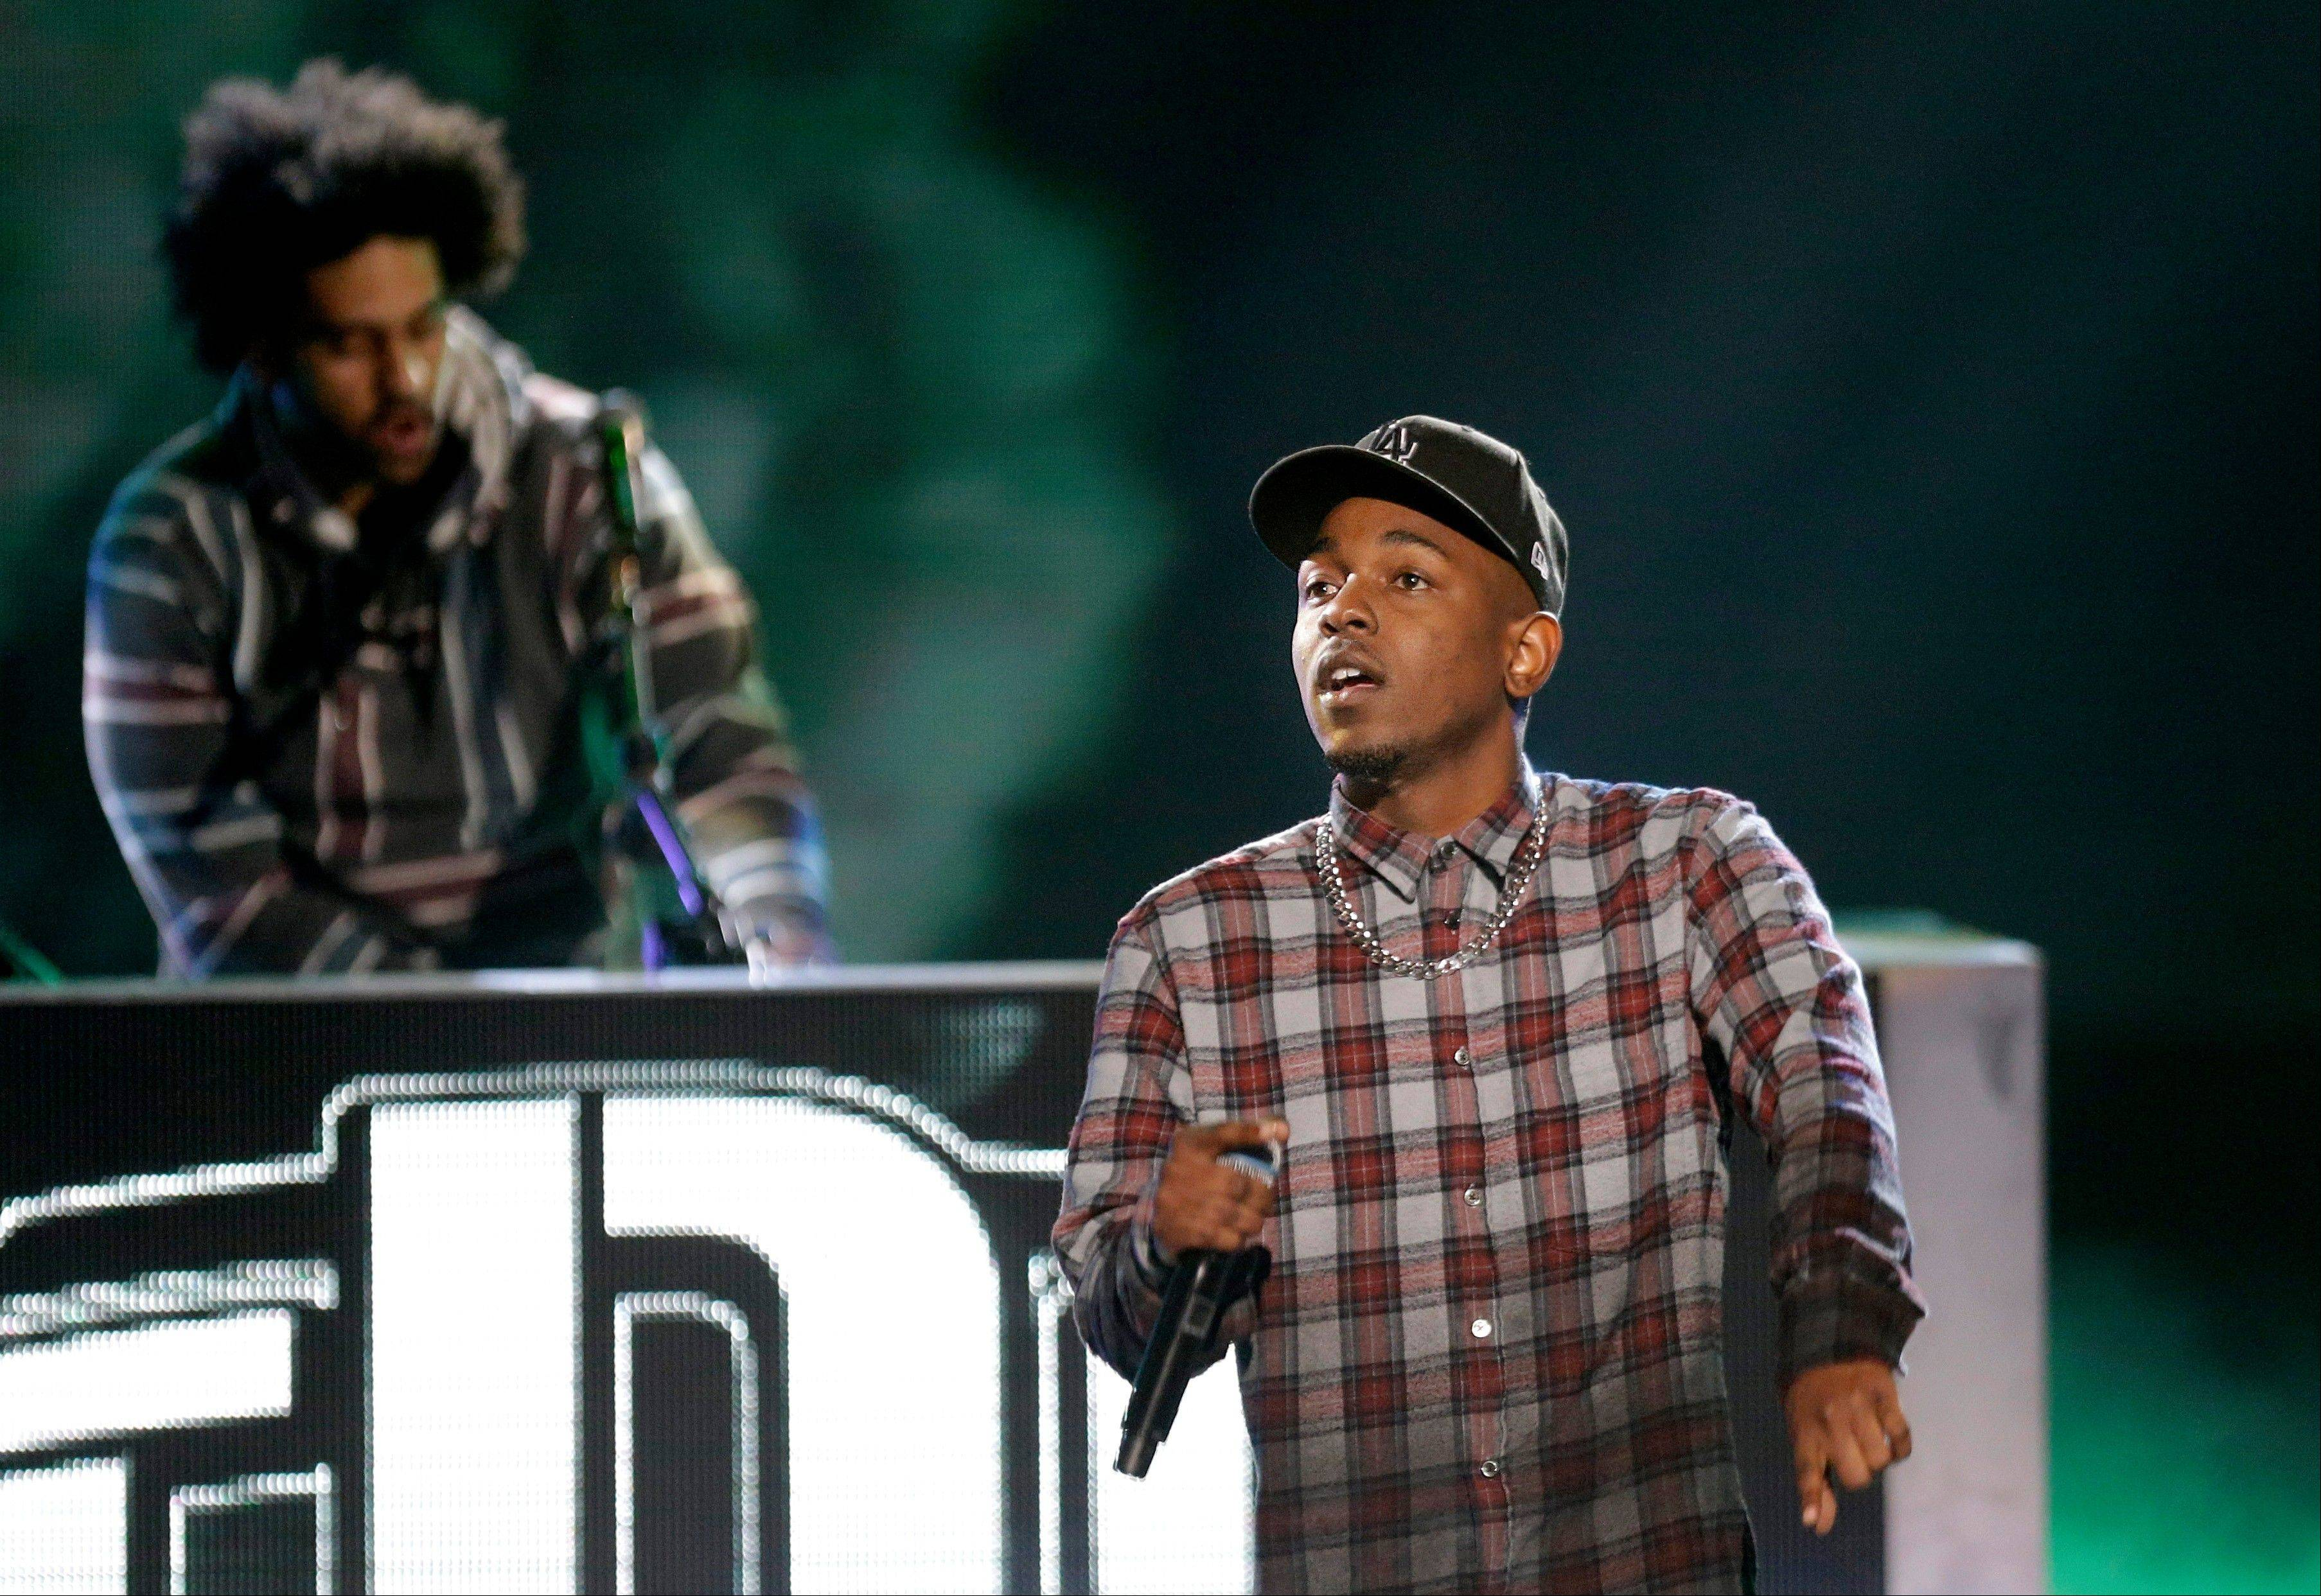 Rapper Kendrick Lamar, right, performs at the BET Hip Hop Awards, Saturday. The show airs on Oct. 15.